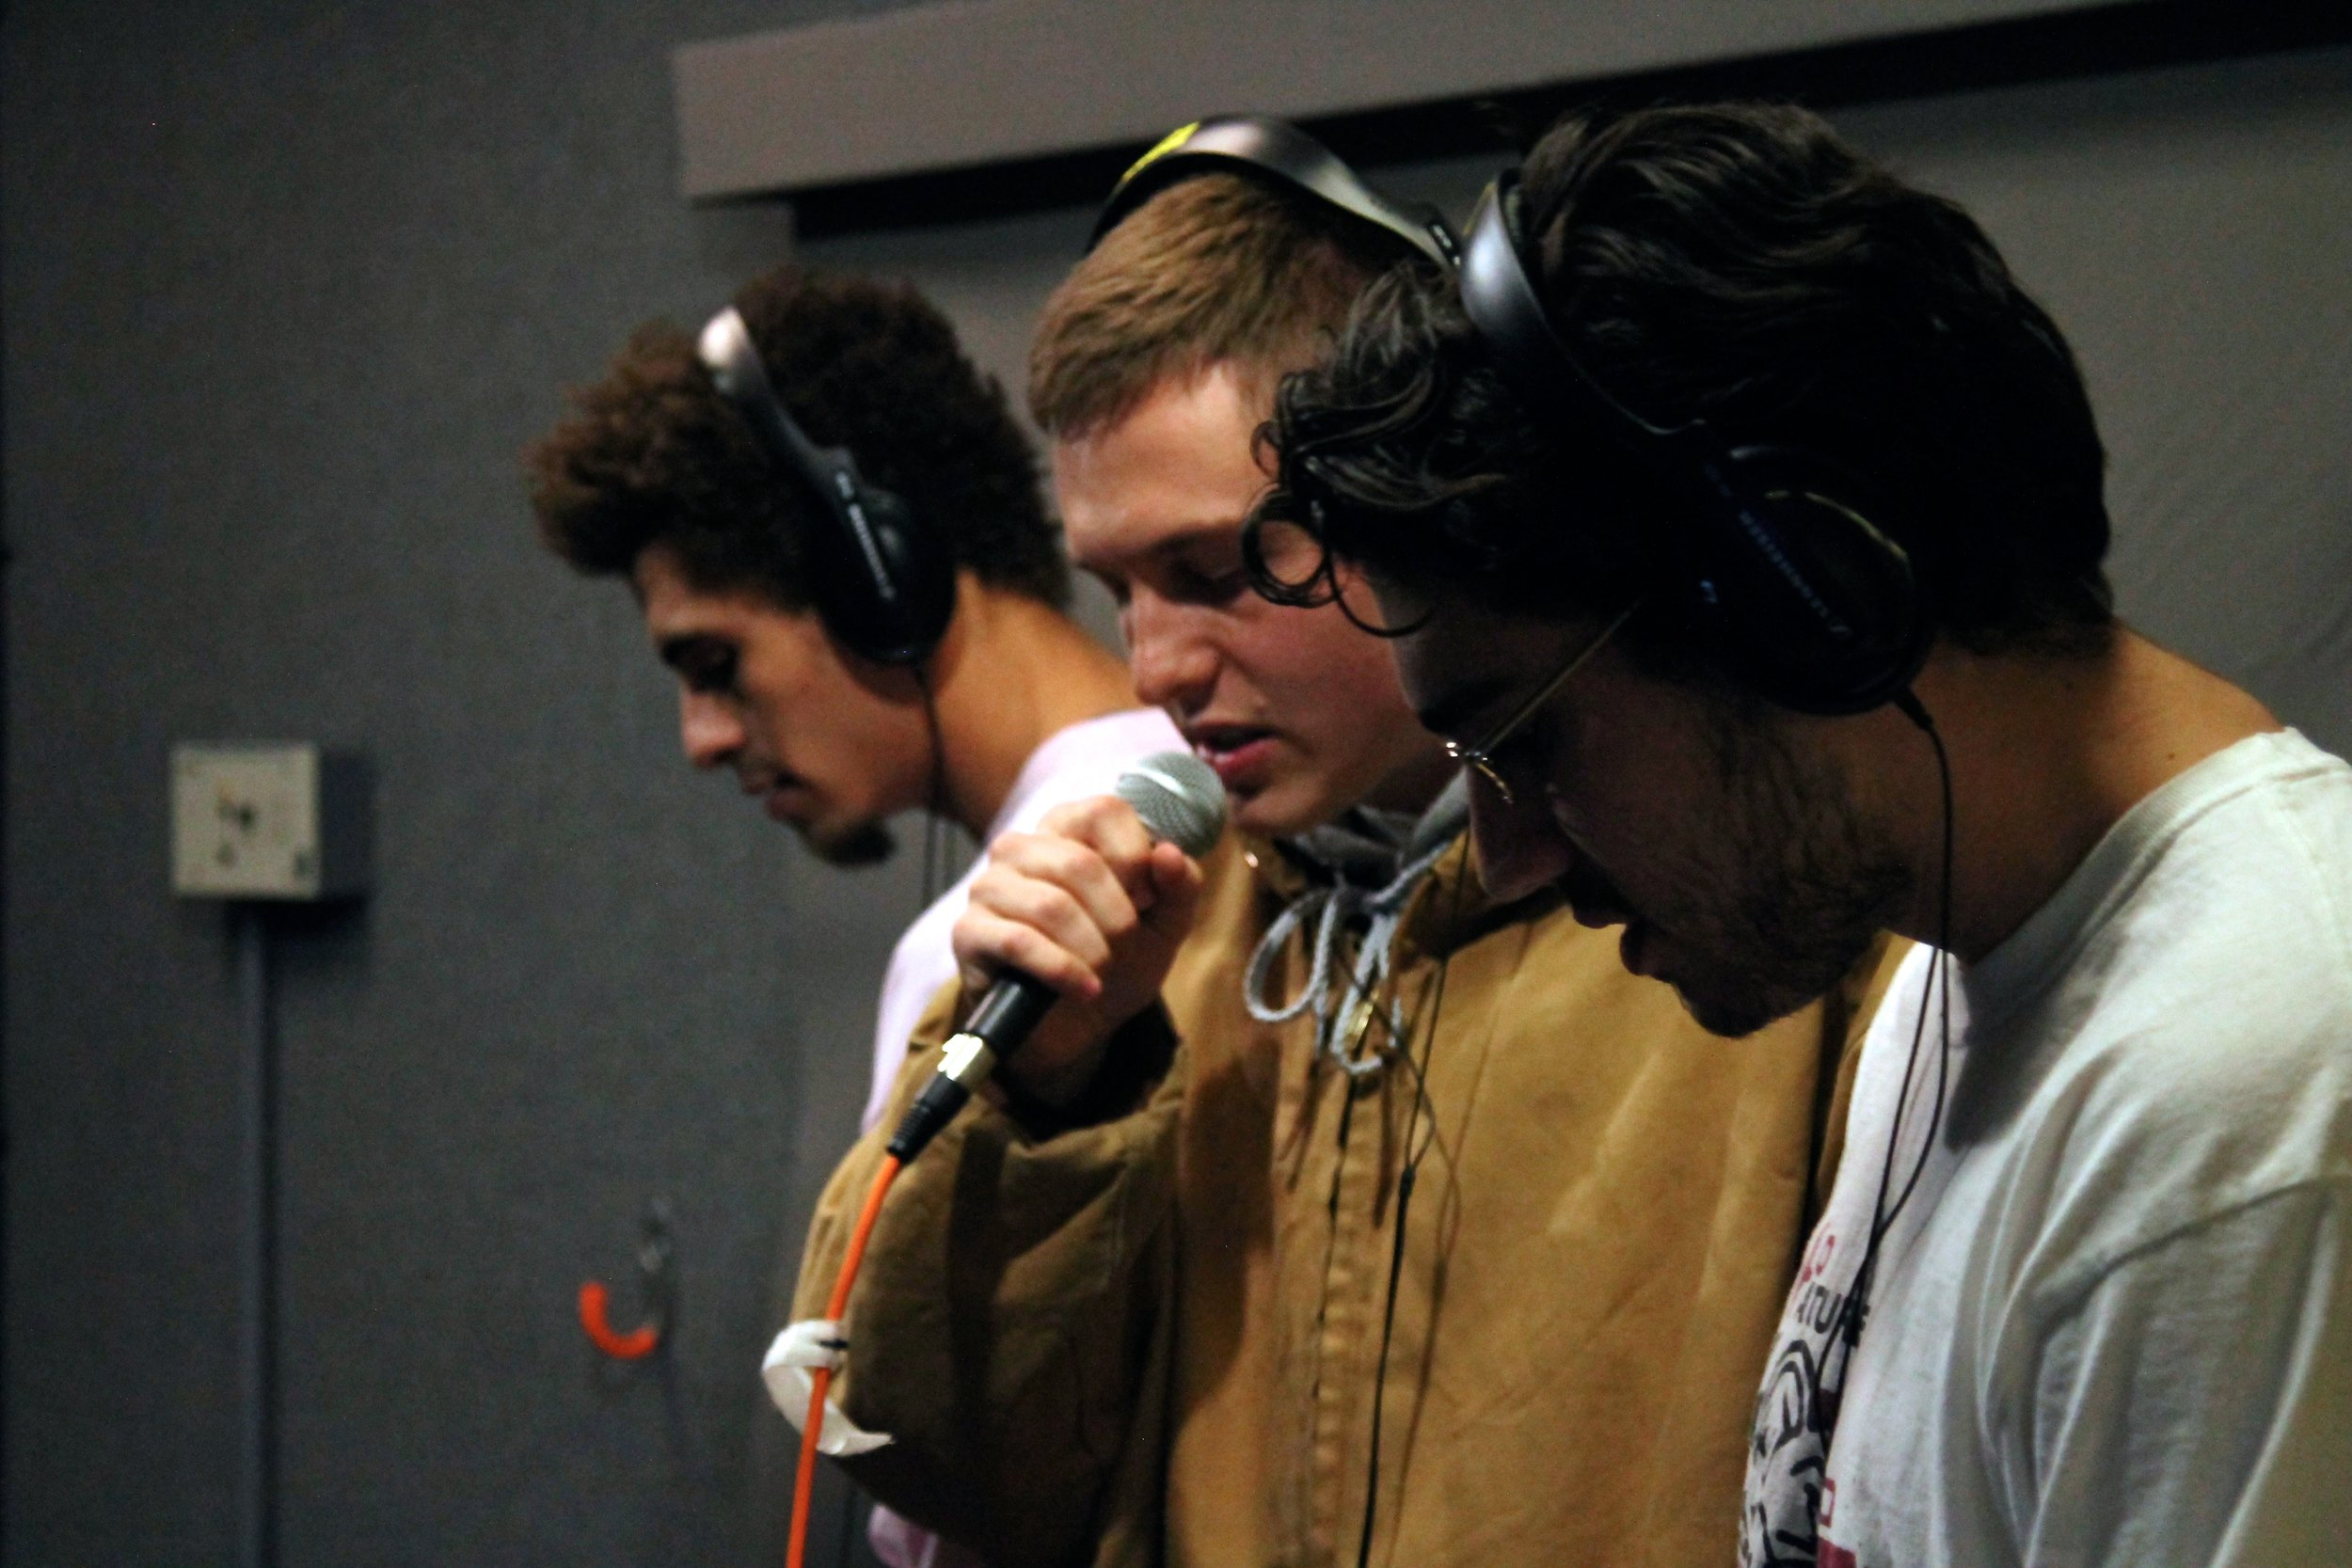 Left to right: Matt Greene, Eric Opal, and Parker Israeli of OFFTOP